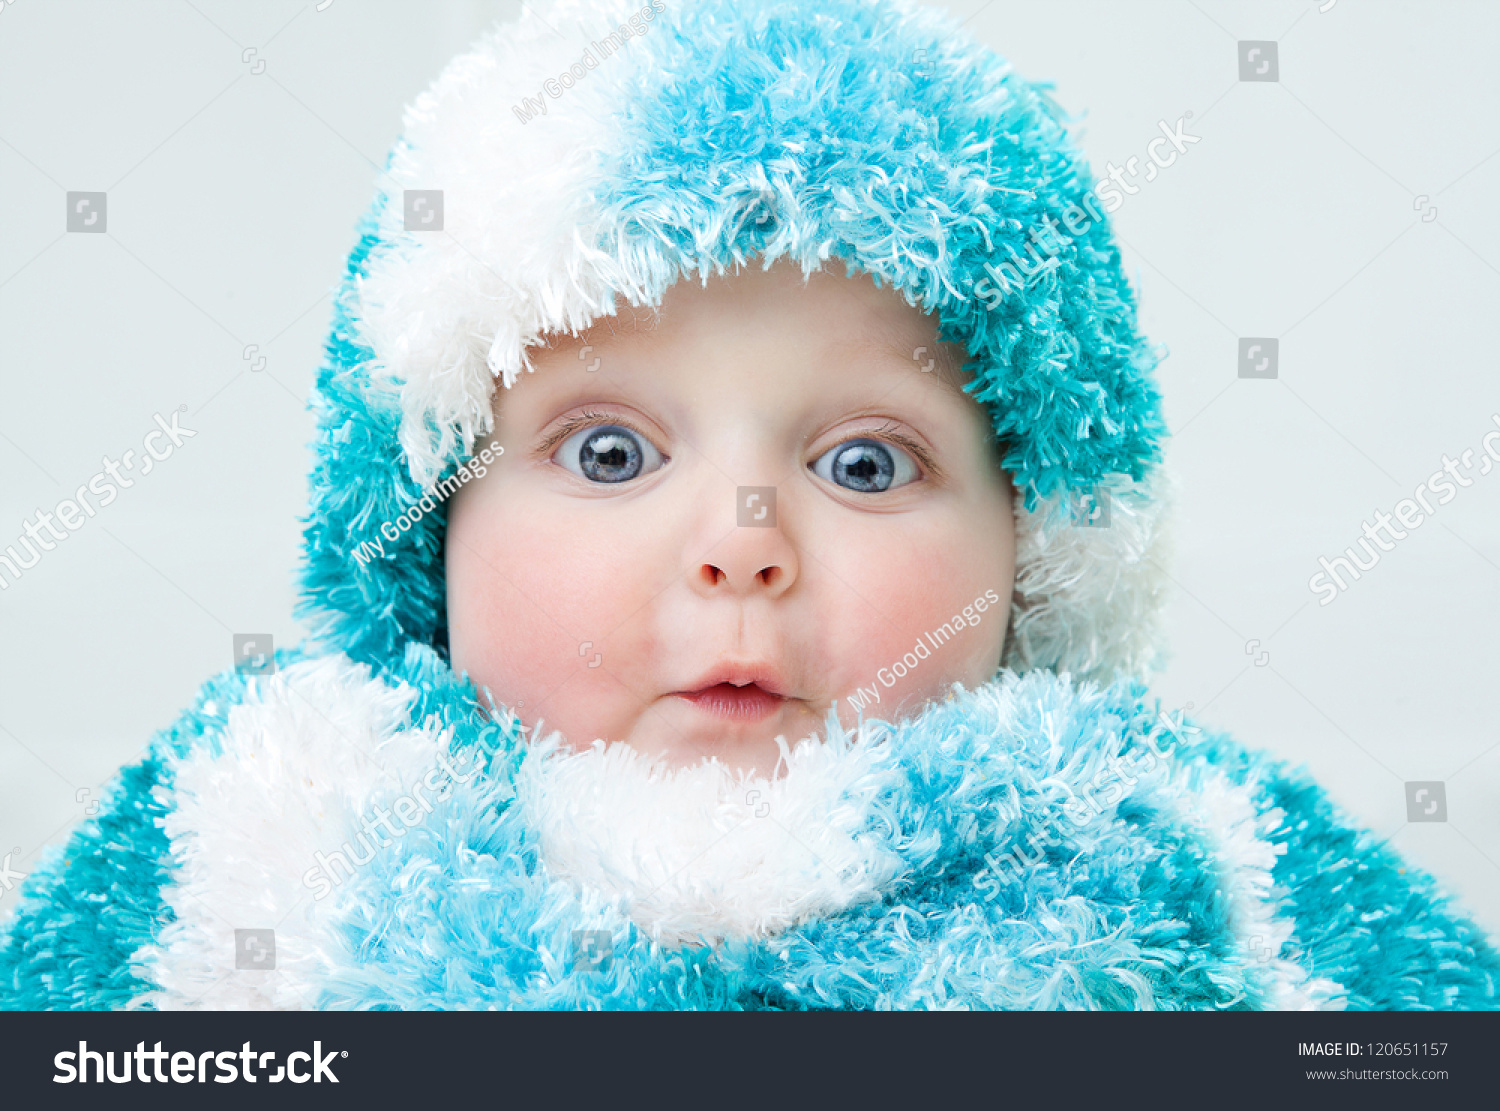 cute baby winter background stock photo (download now) 120651157